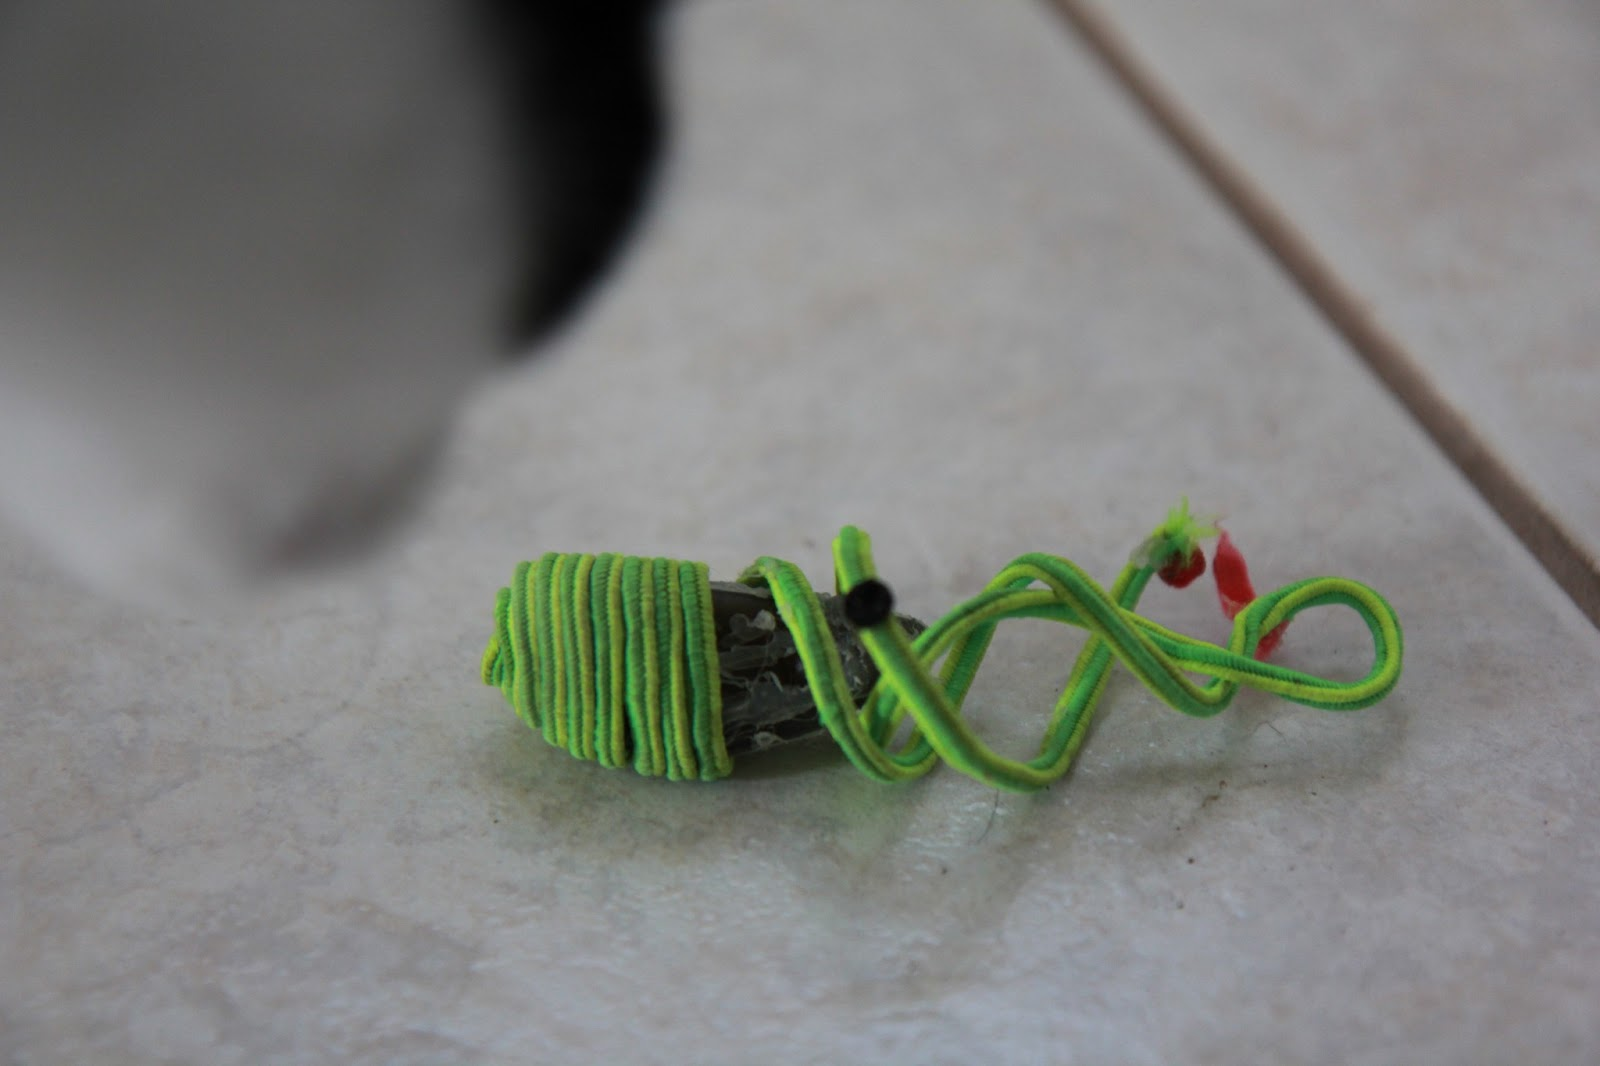 Another ruined cat toy